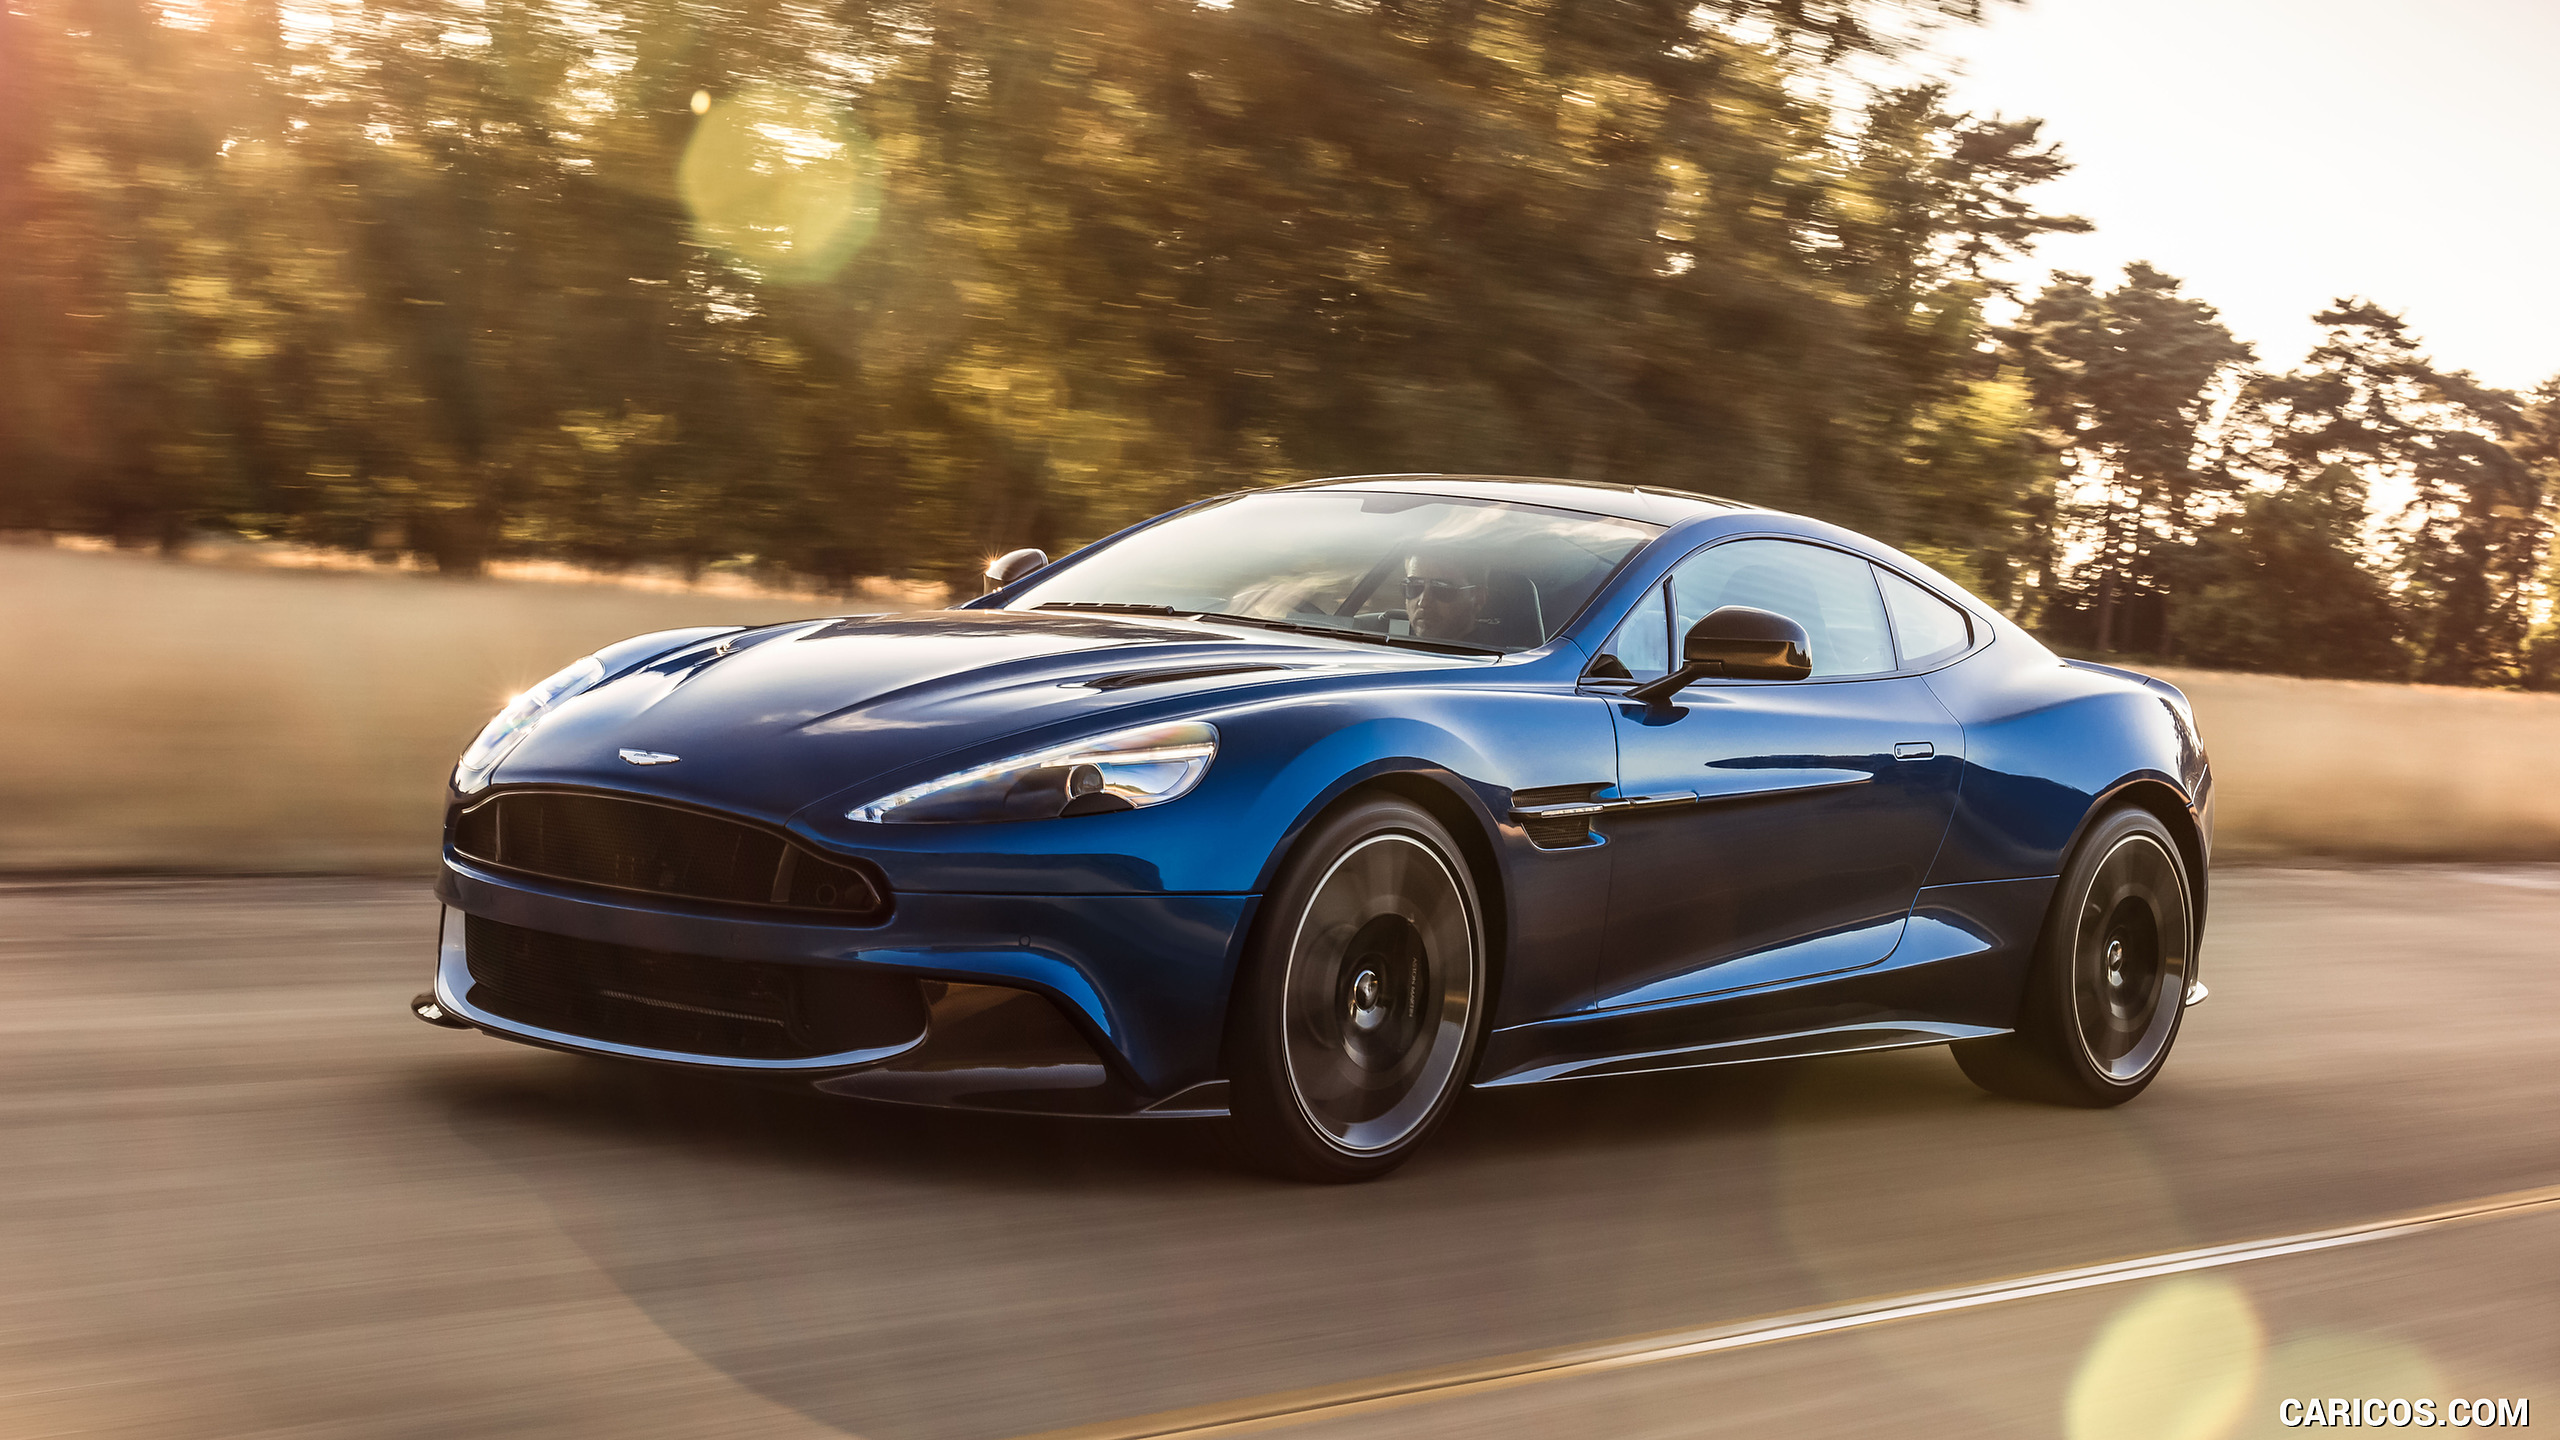 2017 Aston Martin Vanquish S   Front Three Quarter HD Wallpaper 2 2560x1440